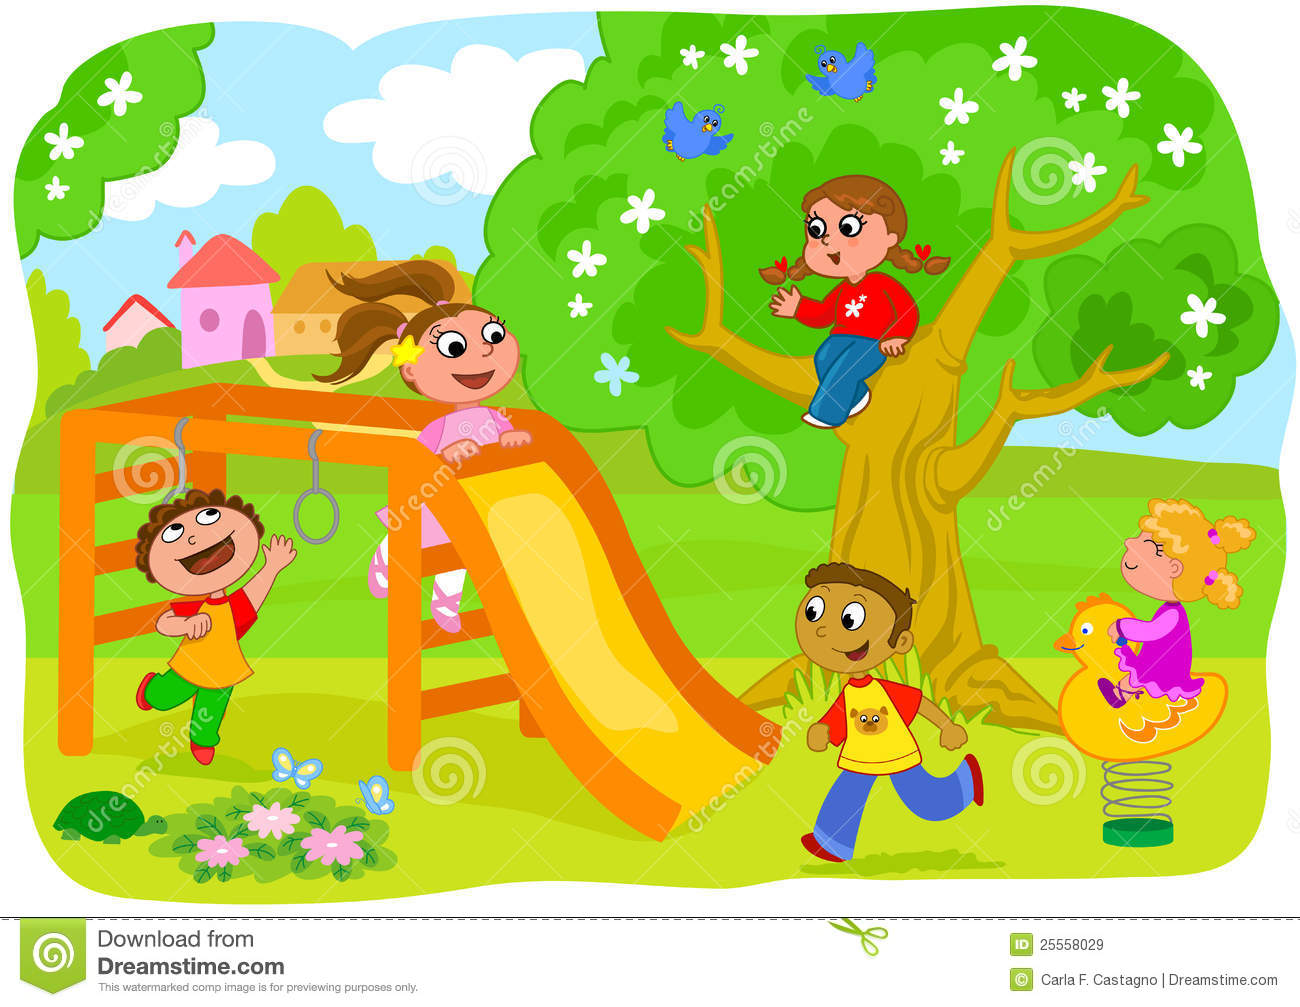 Kids playing on playground clipart 8 » Clipart Station.